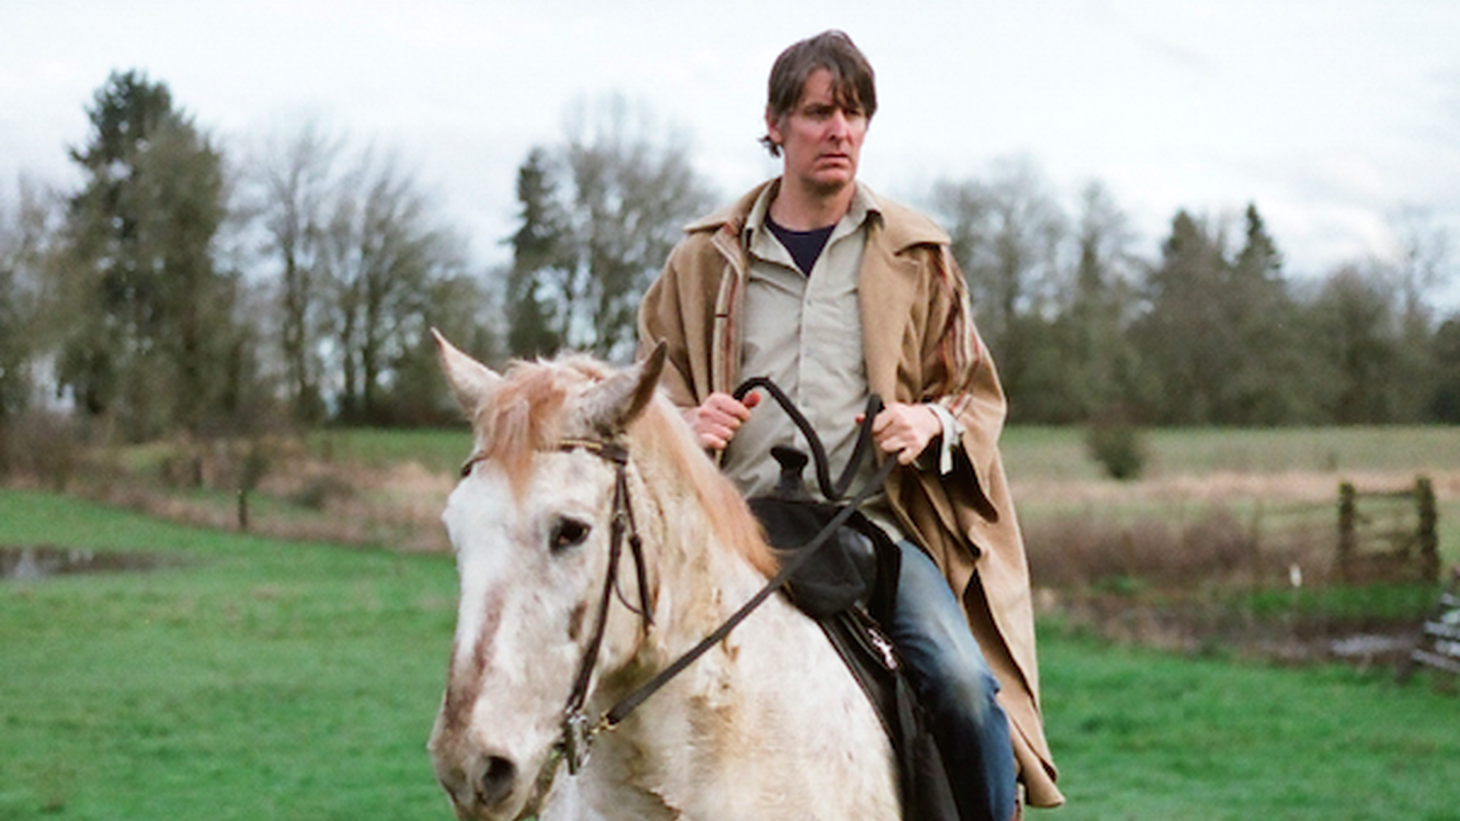 Indie rock hero Stephen Malkmus gained a cult following as the founding member of '90's favorite Pavement and continues to explore exciting new terrain on his 7th solo album.